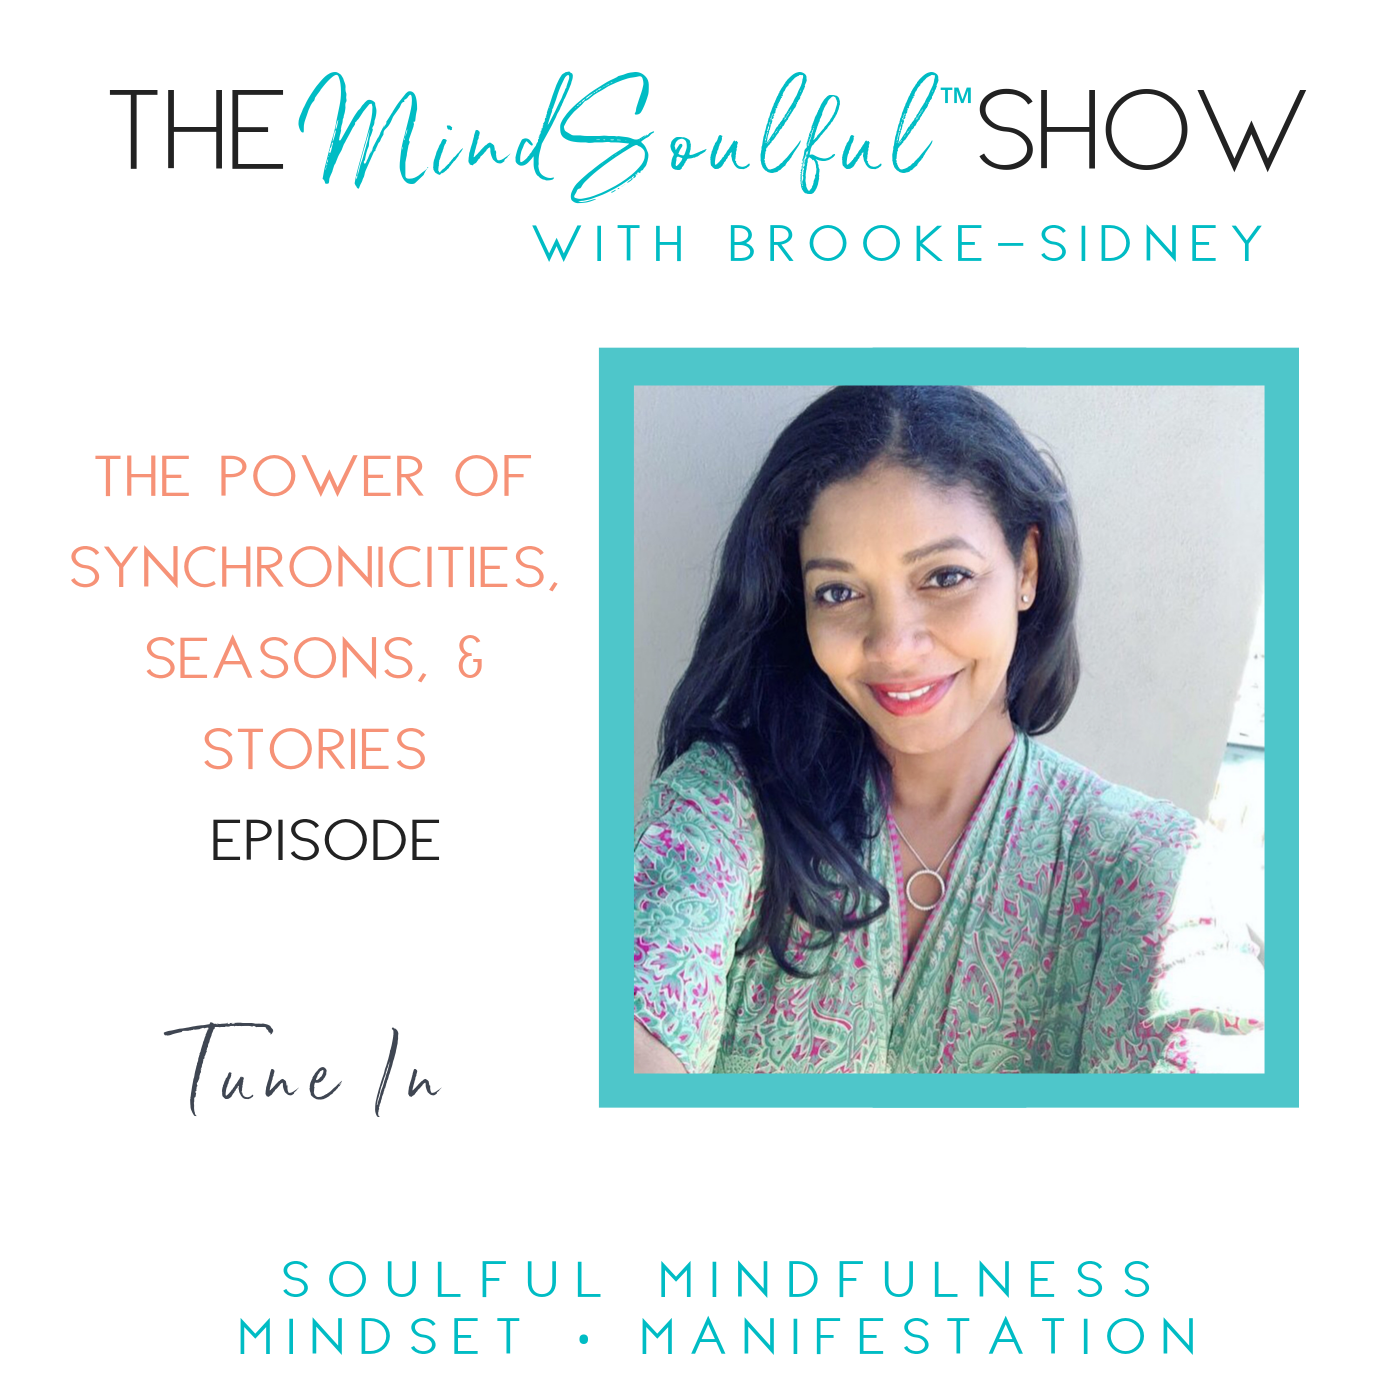 THE MINDSOULFUL SHOW - the power of synchronicities, seasons, & stories Episode.png